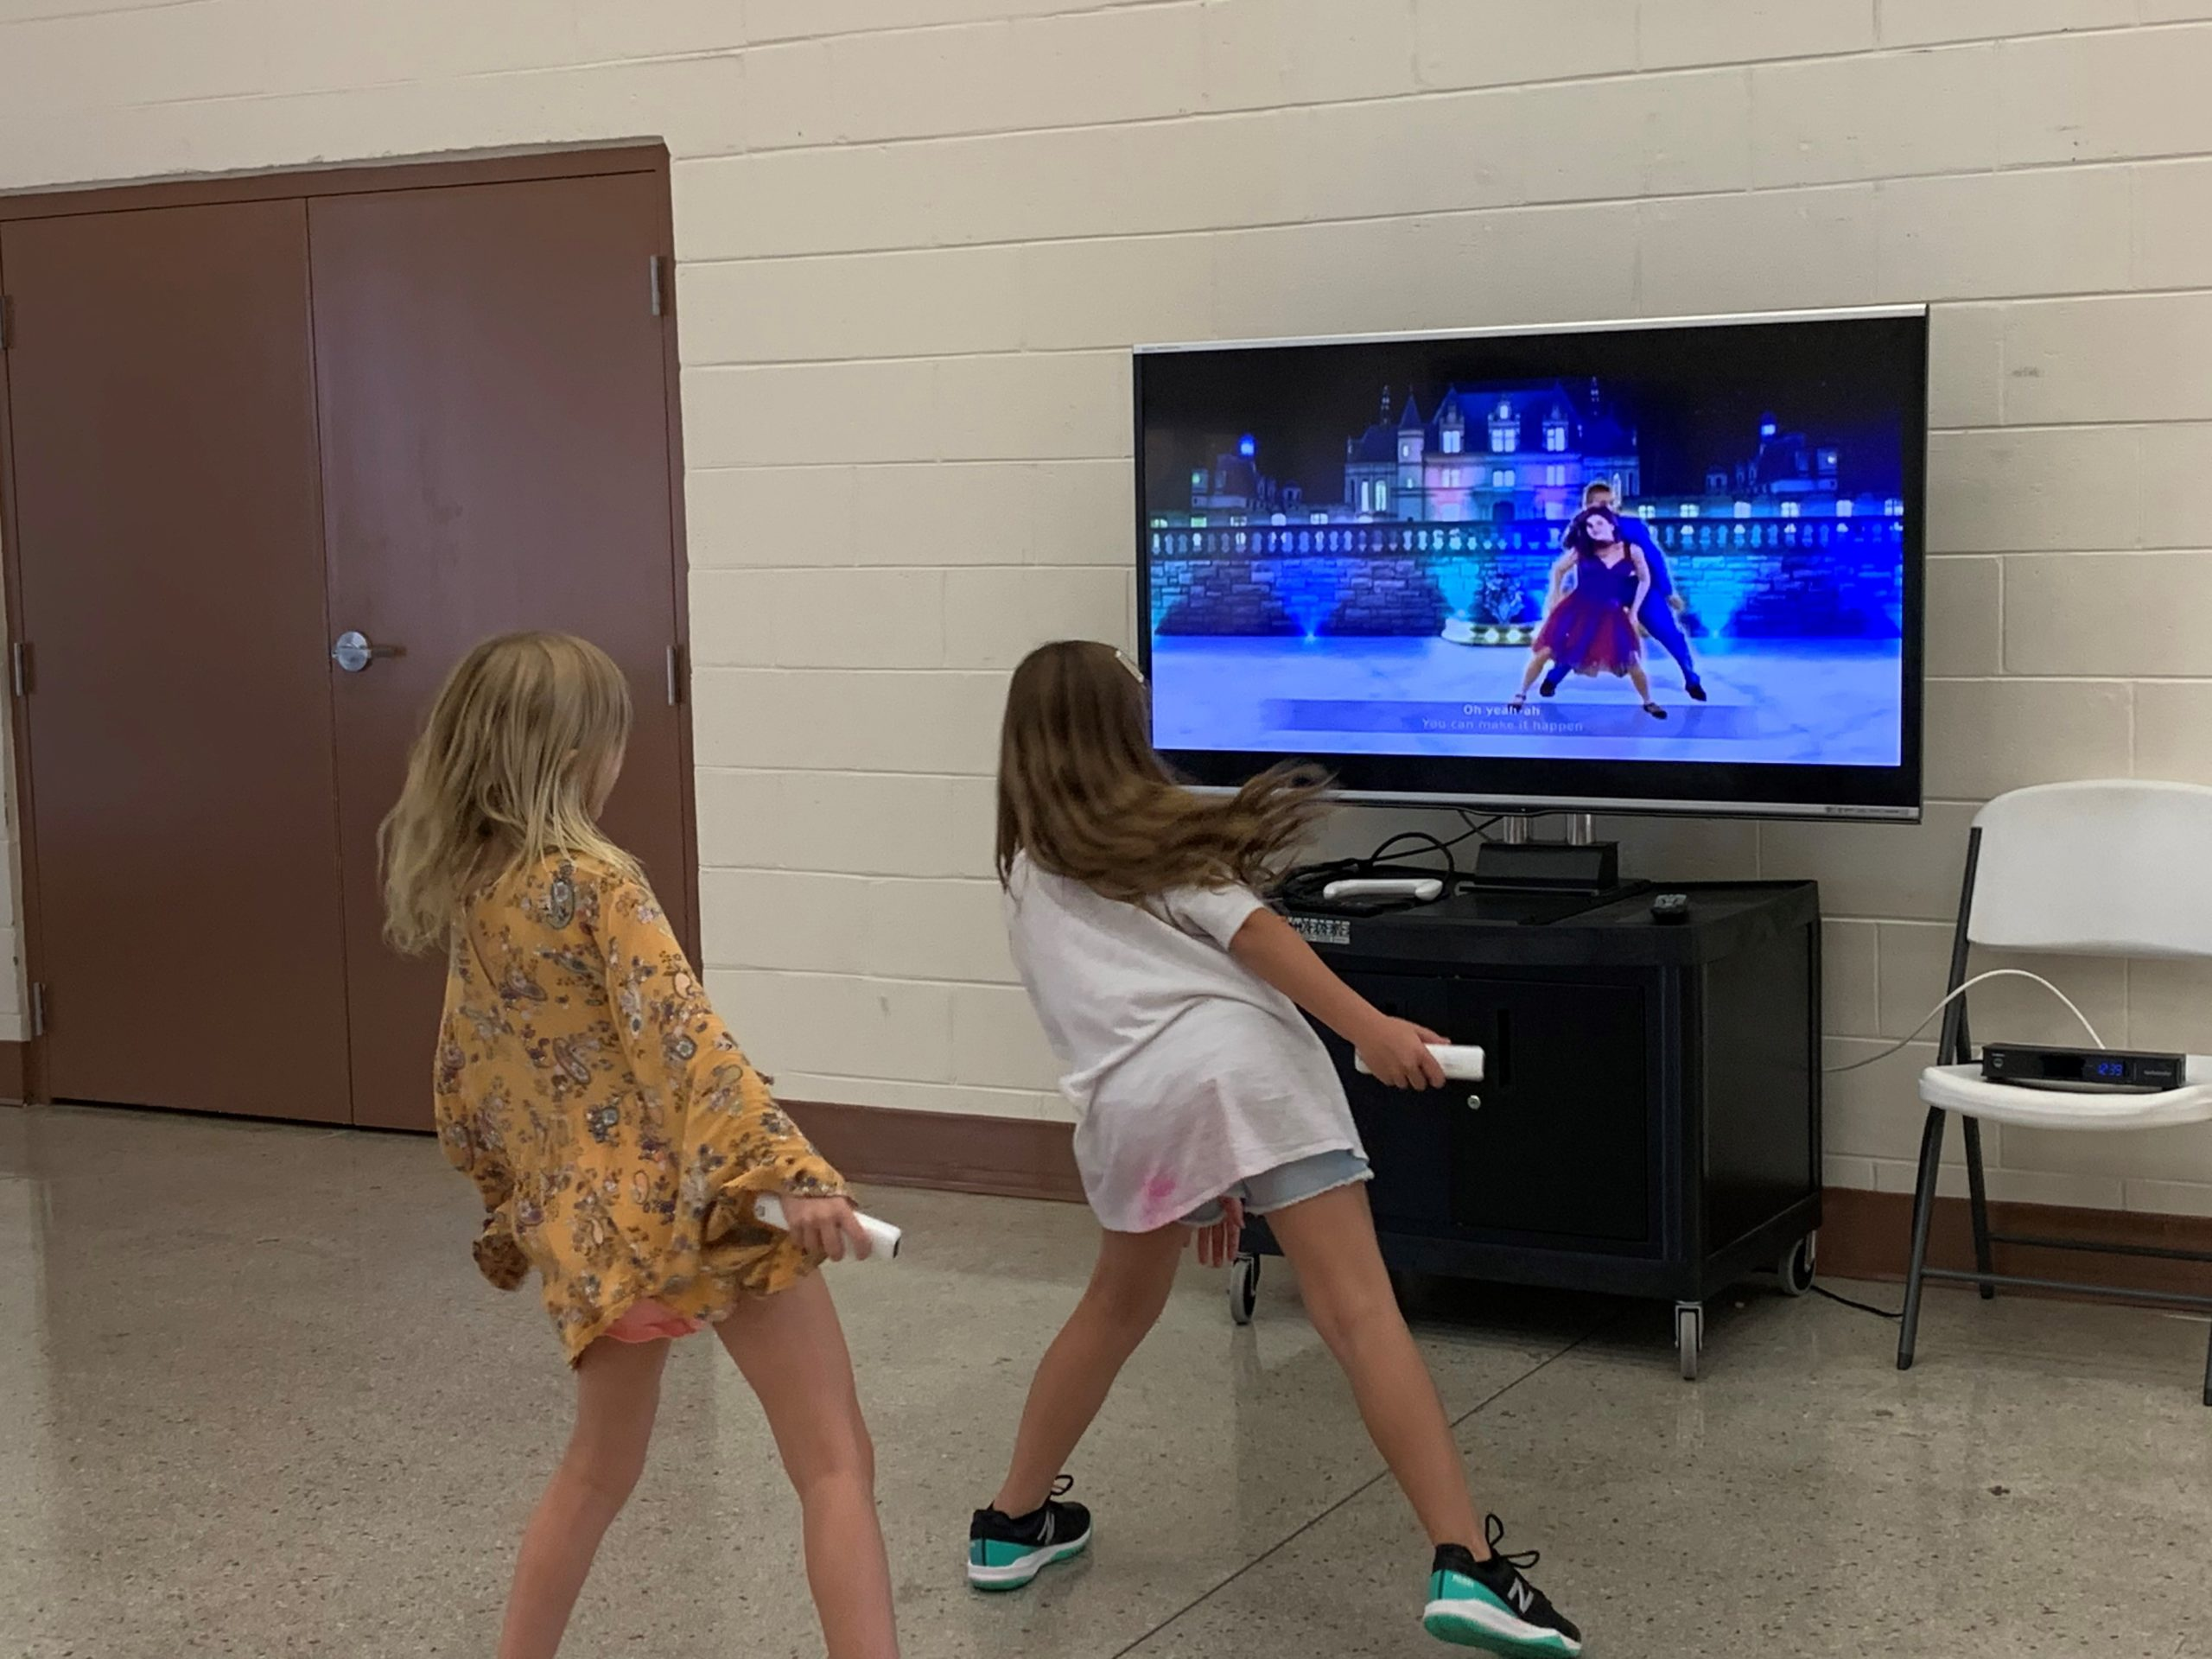 Gulfport Florida kids summer campers play Wii